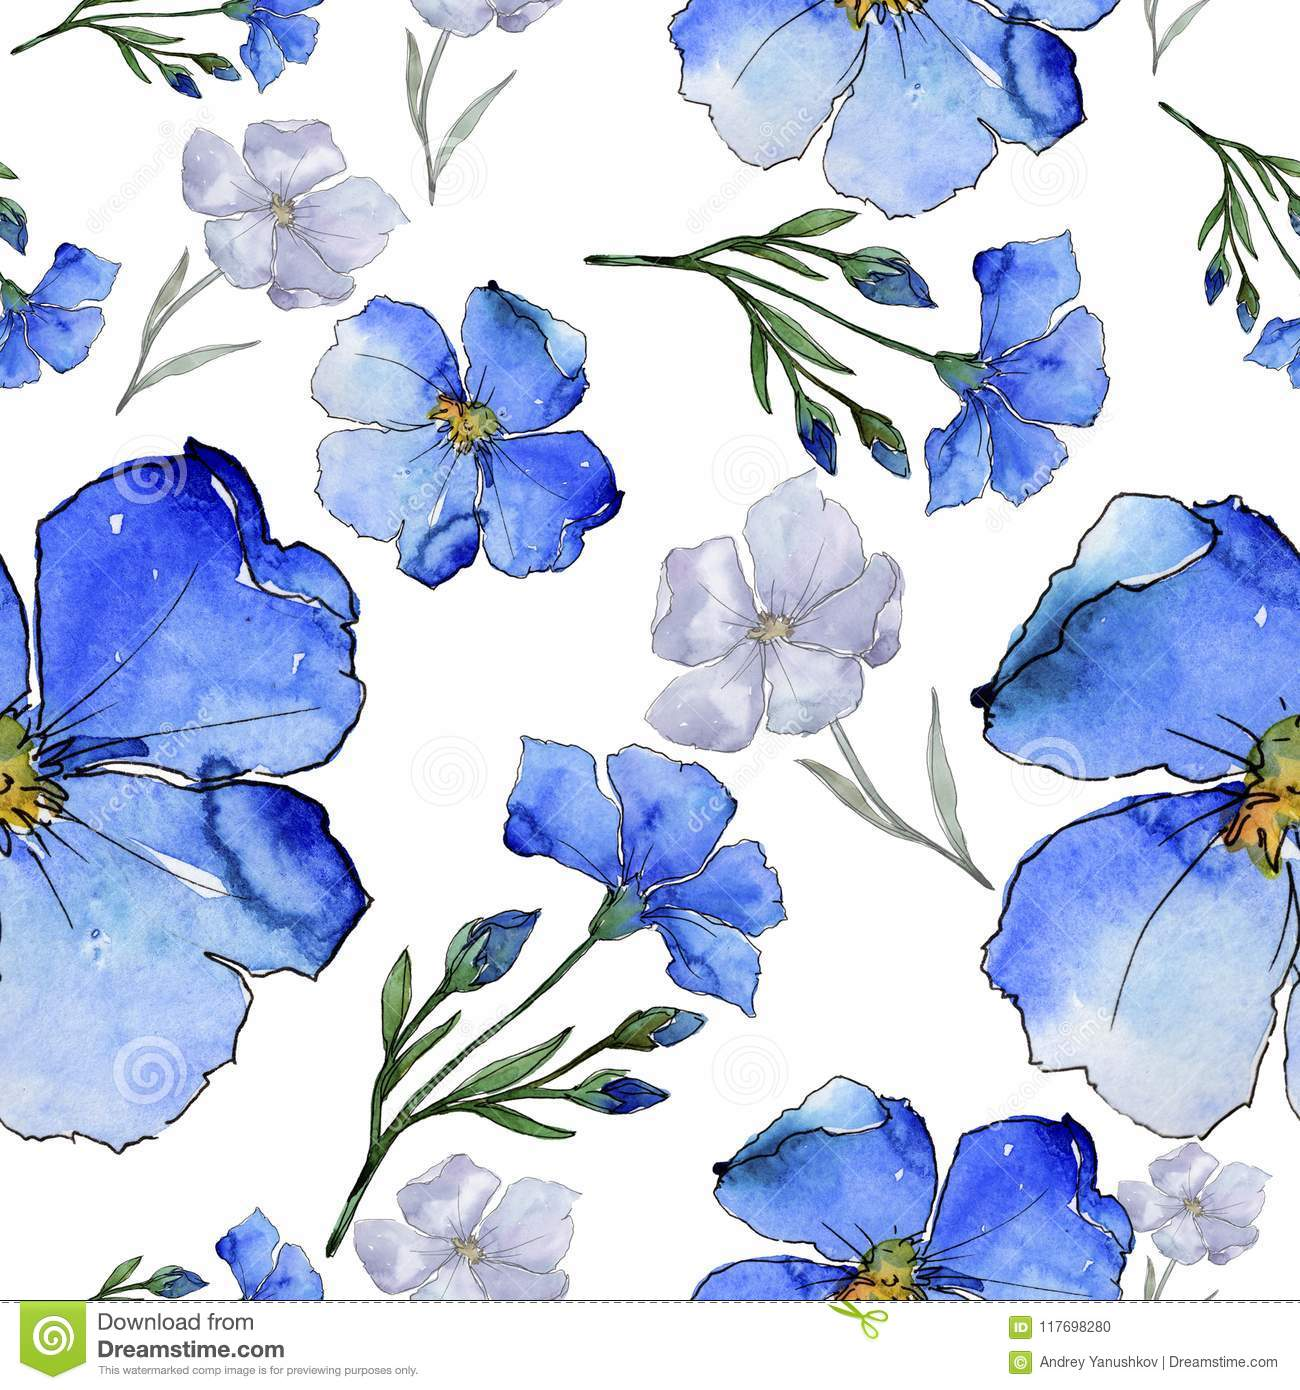 Blue Flax Floral Botanical Flower Seamless Background Pattern